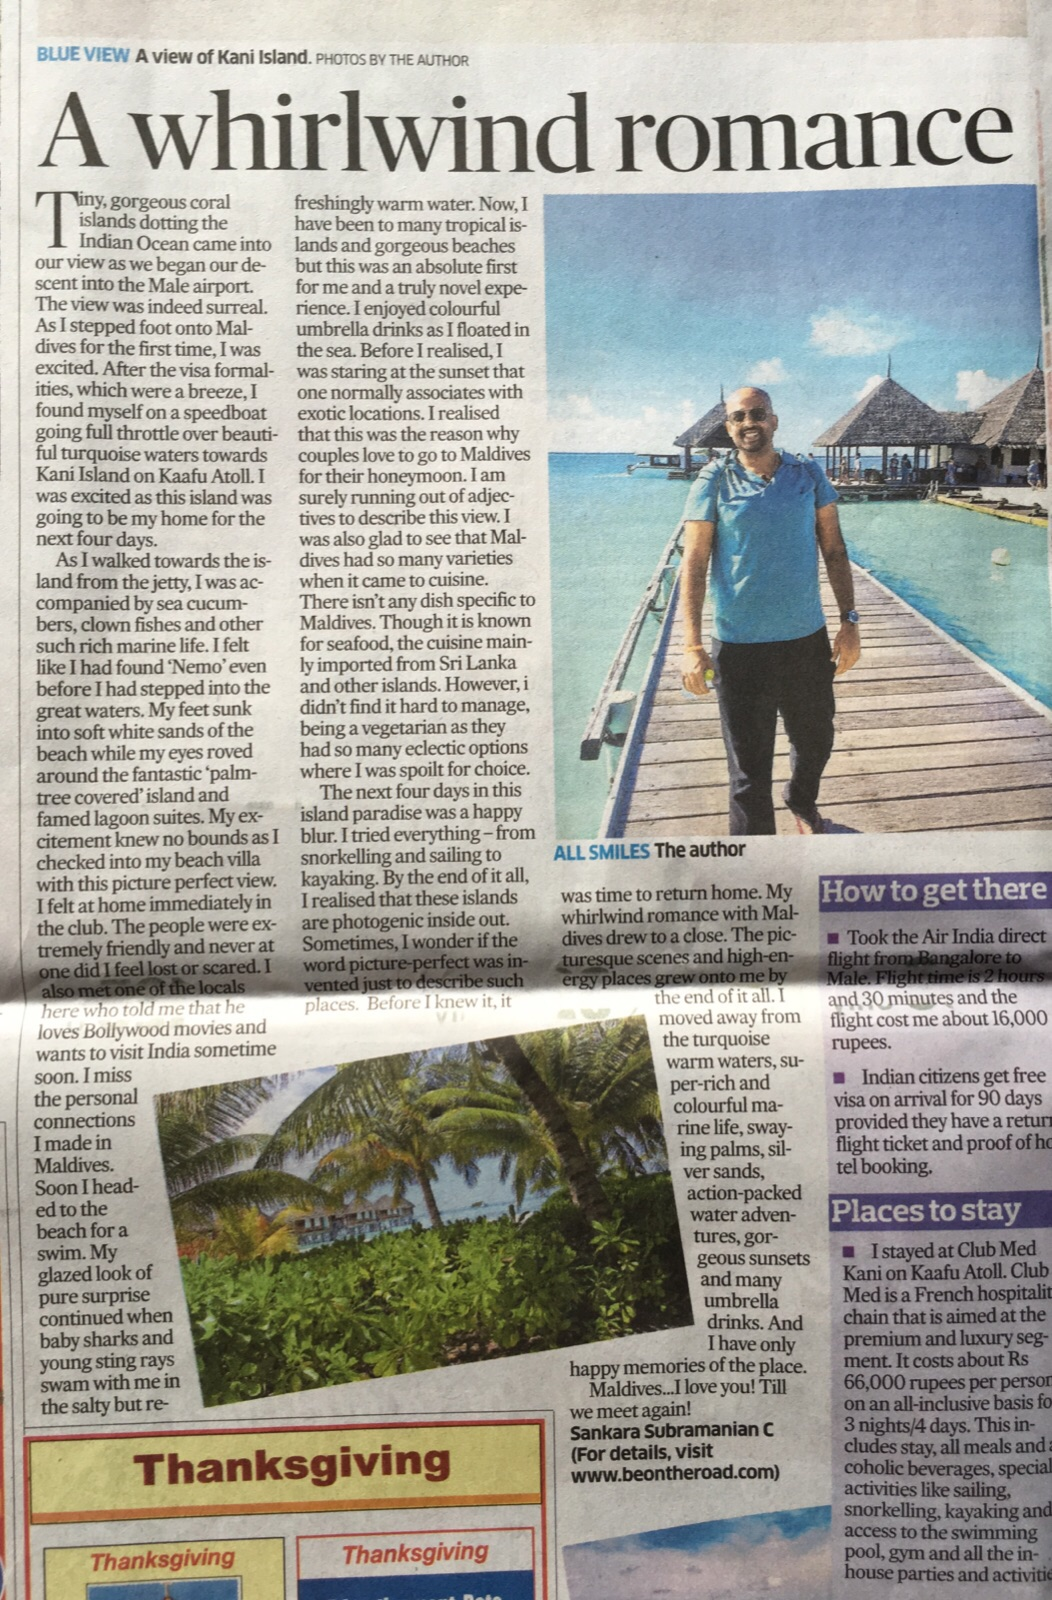 MyWhirlwind Romance - Maldives article in Deccan Heralad